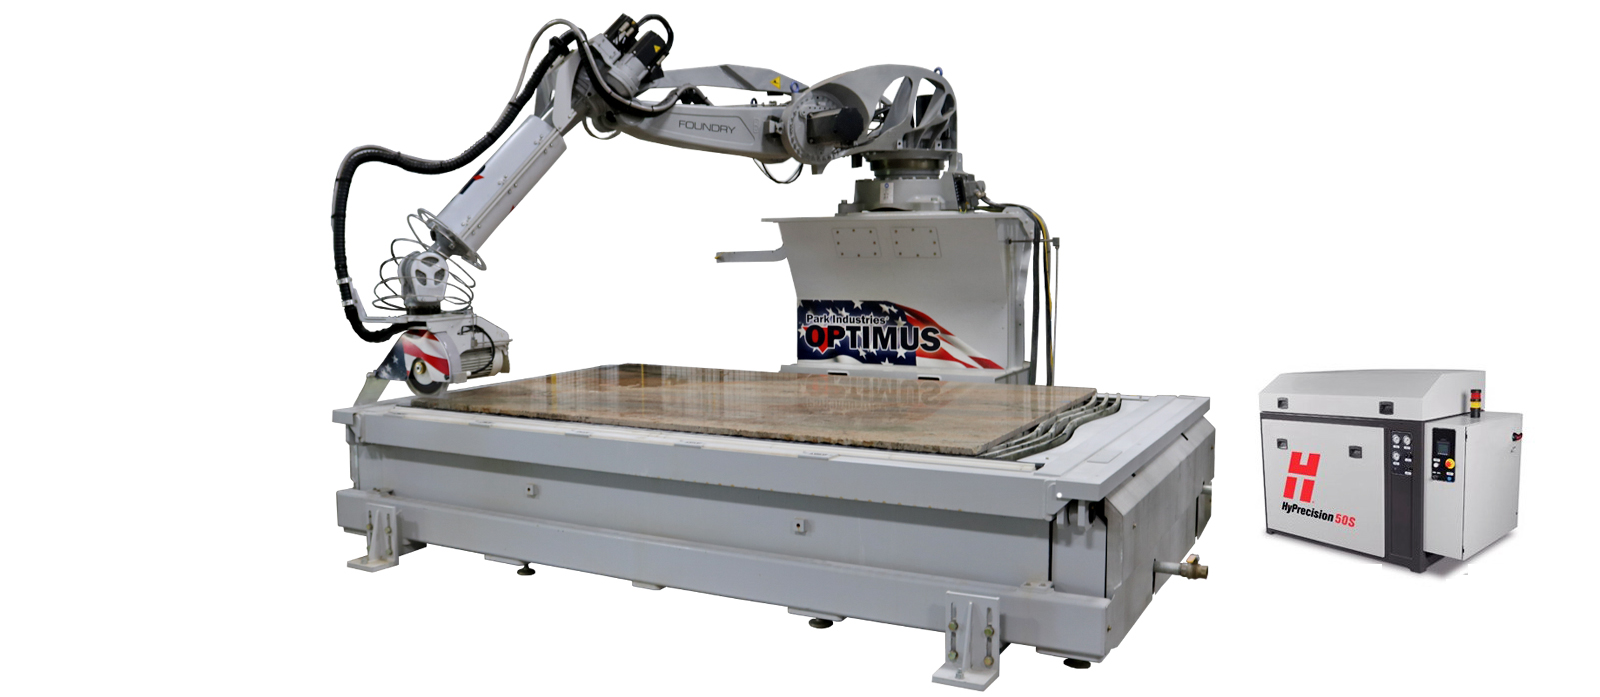 OPTIMUS Robotic Sawjet for stone cutting and stone countertop fabrication park industries robot